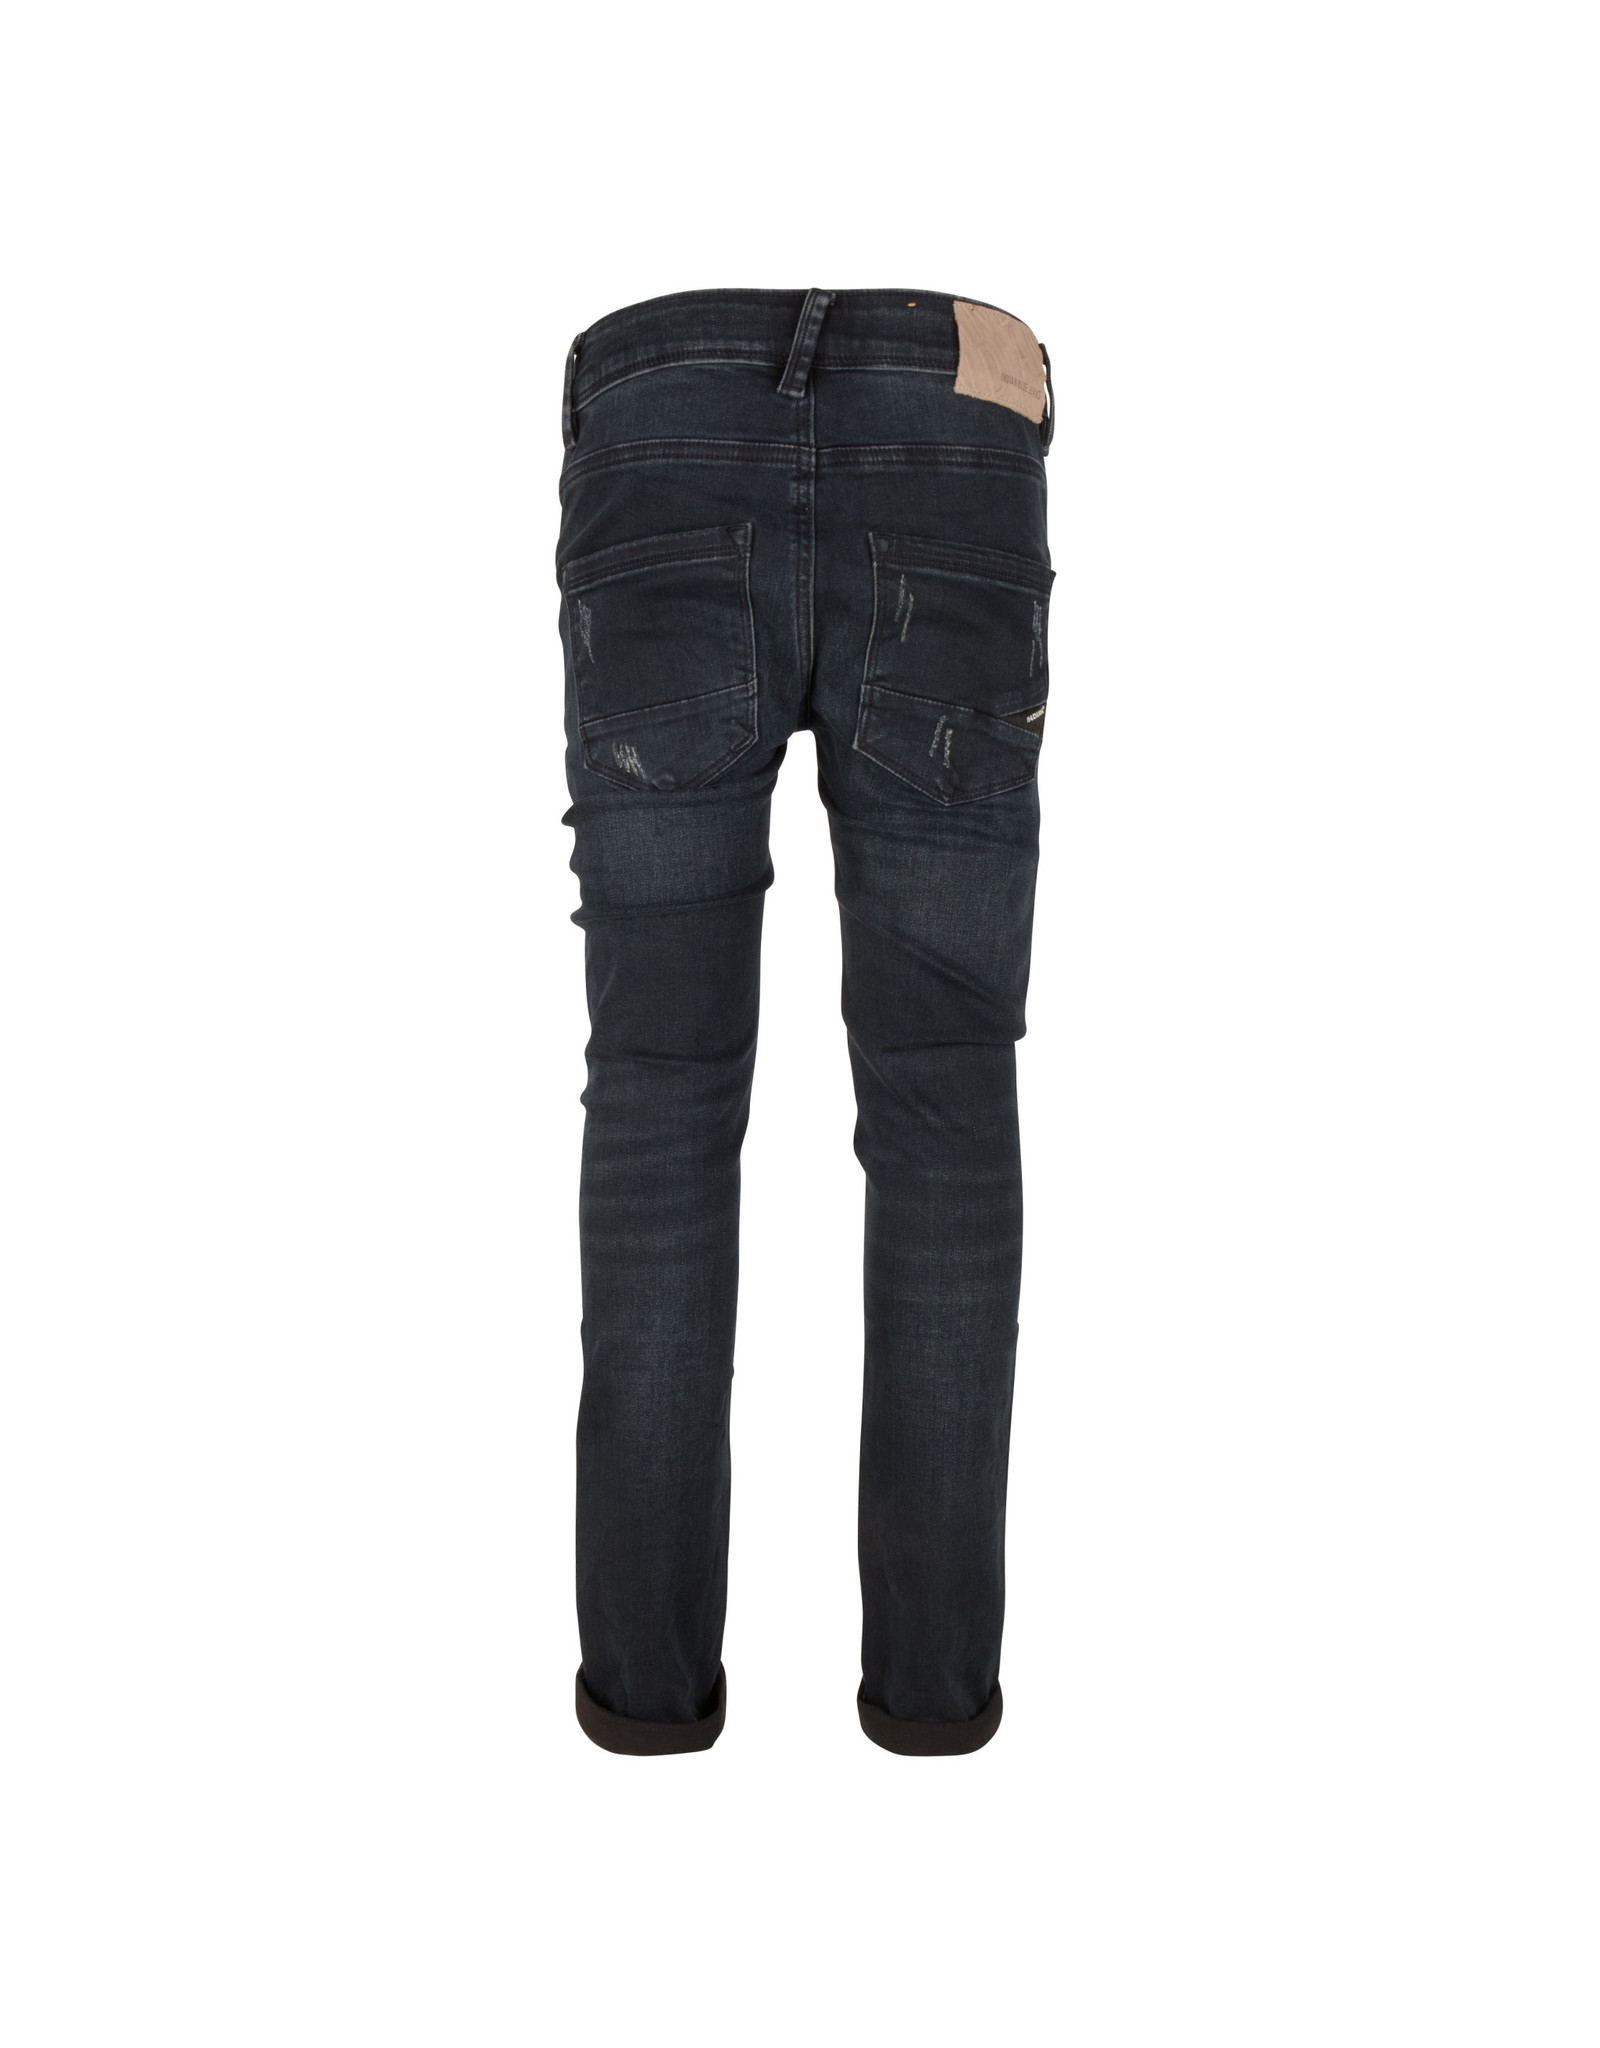 Indian Blue jeans IBB22-2758